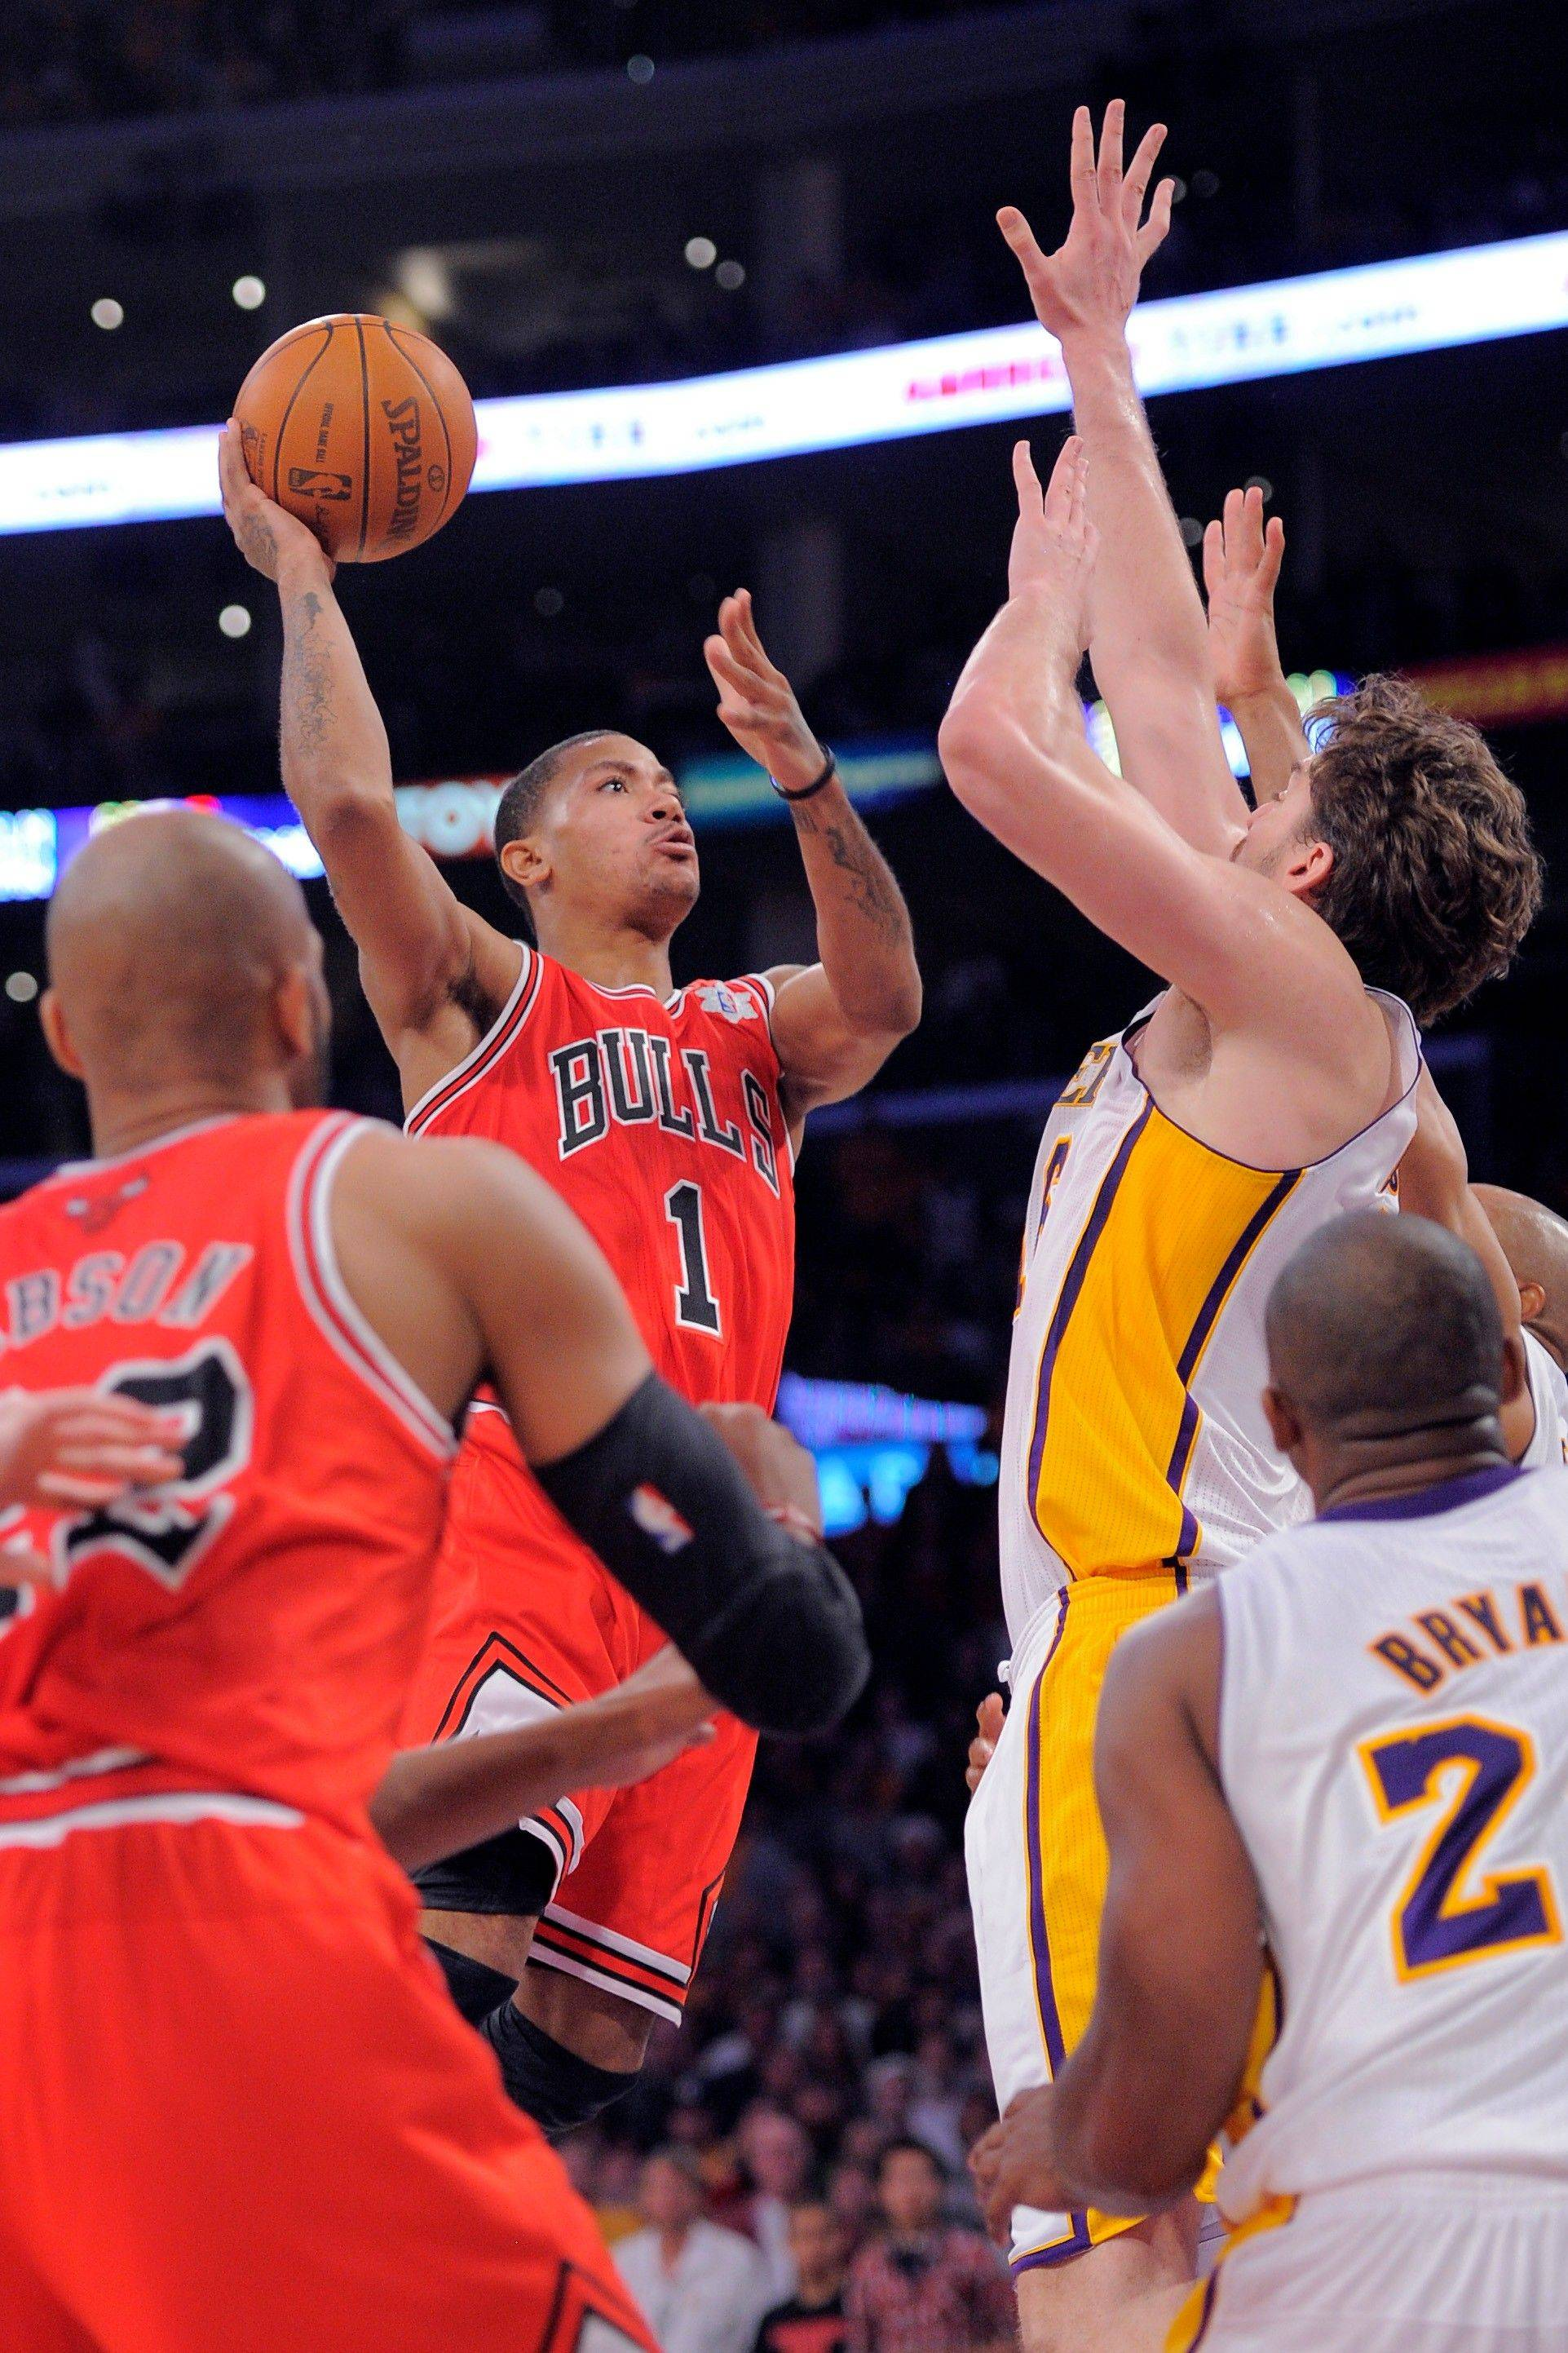 Bulls guard Derrick Rose scores to give the Bulls the lead in the final seconds Sunday in Los Angeles.